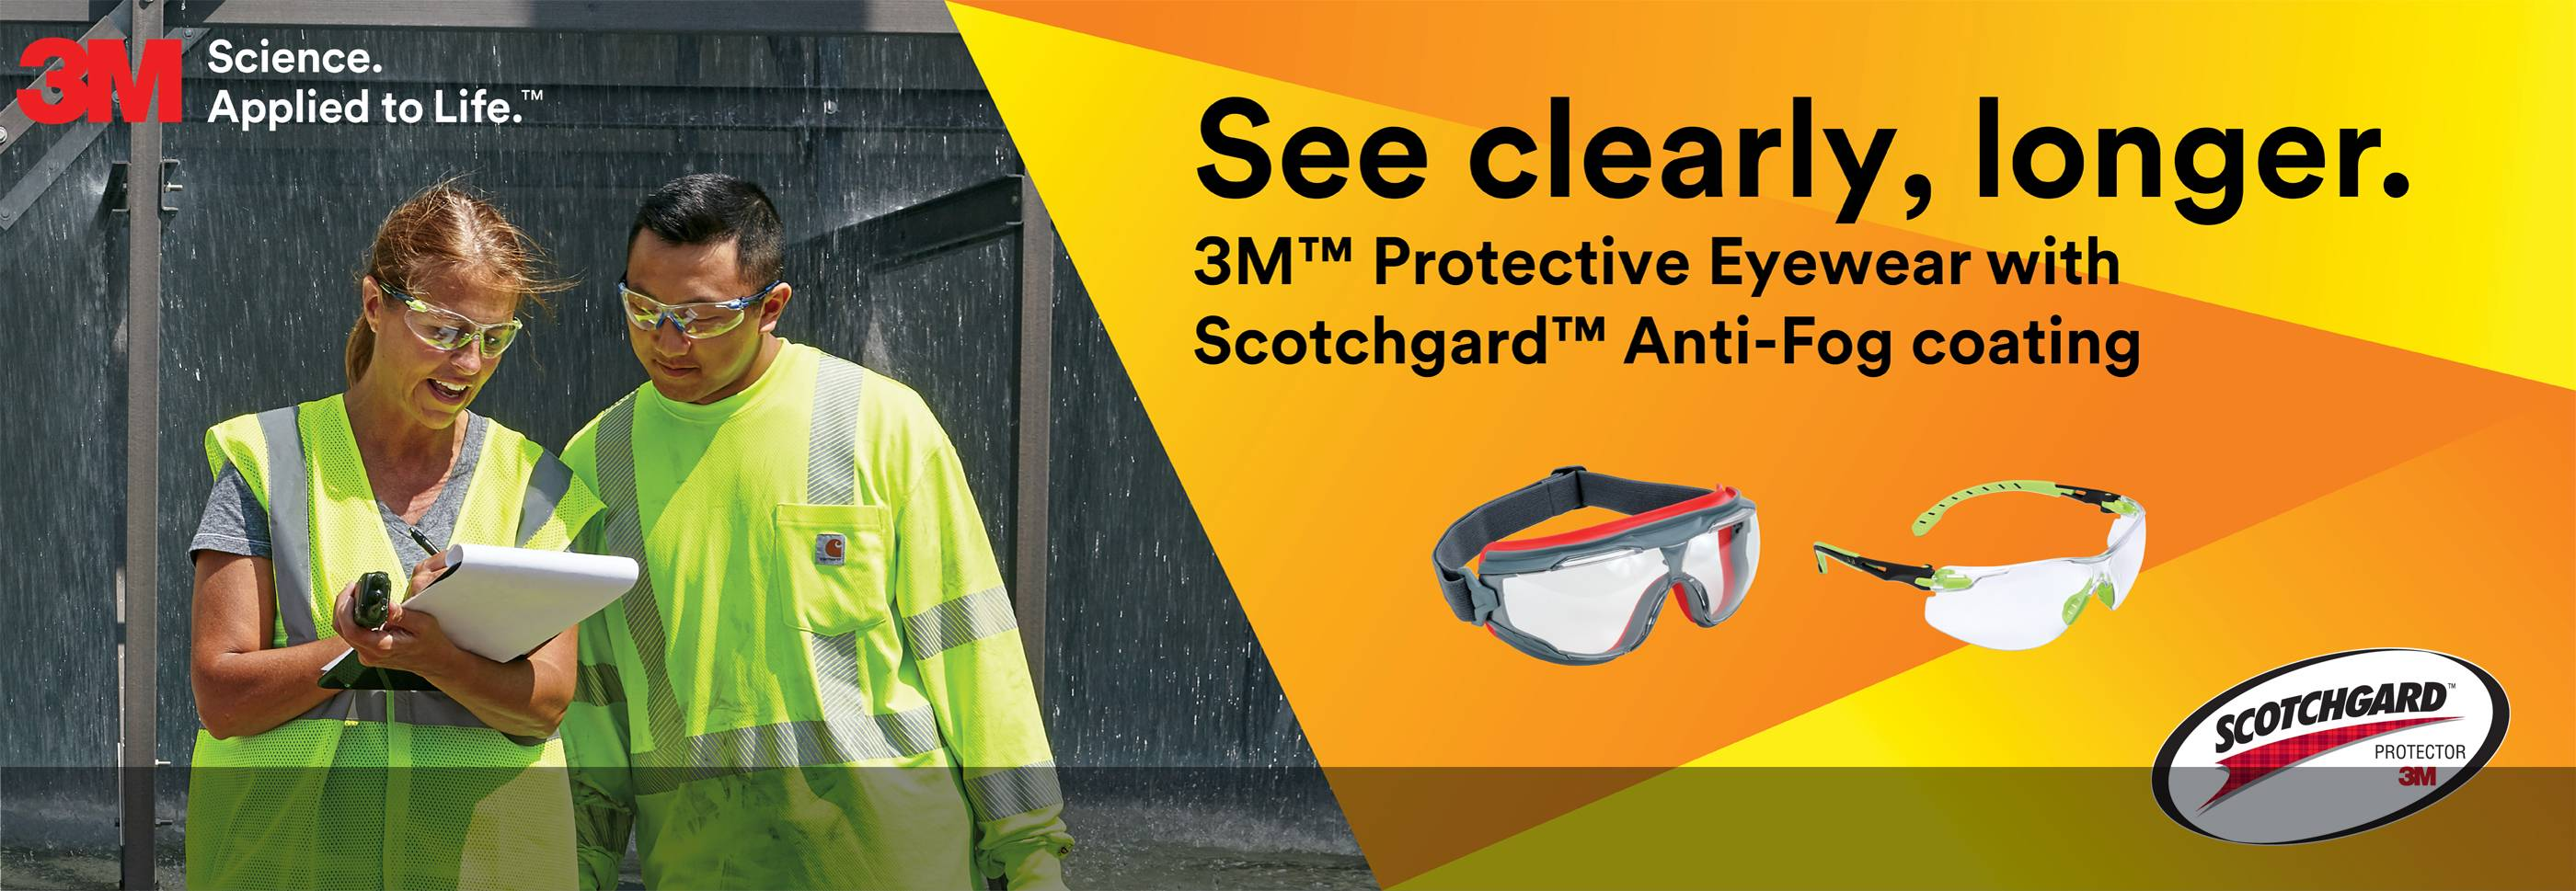 See clearly, longer 3M Protective Eyewear with Scotchgard Anti Fog coating